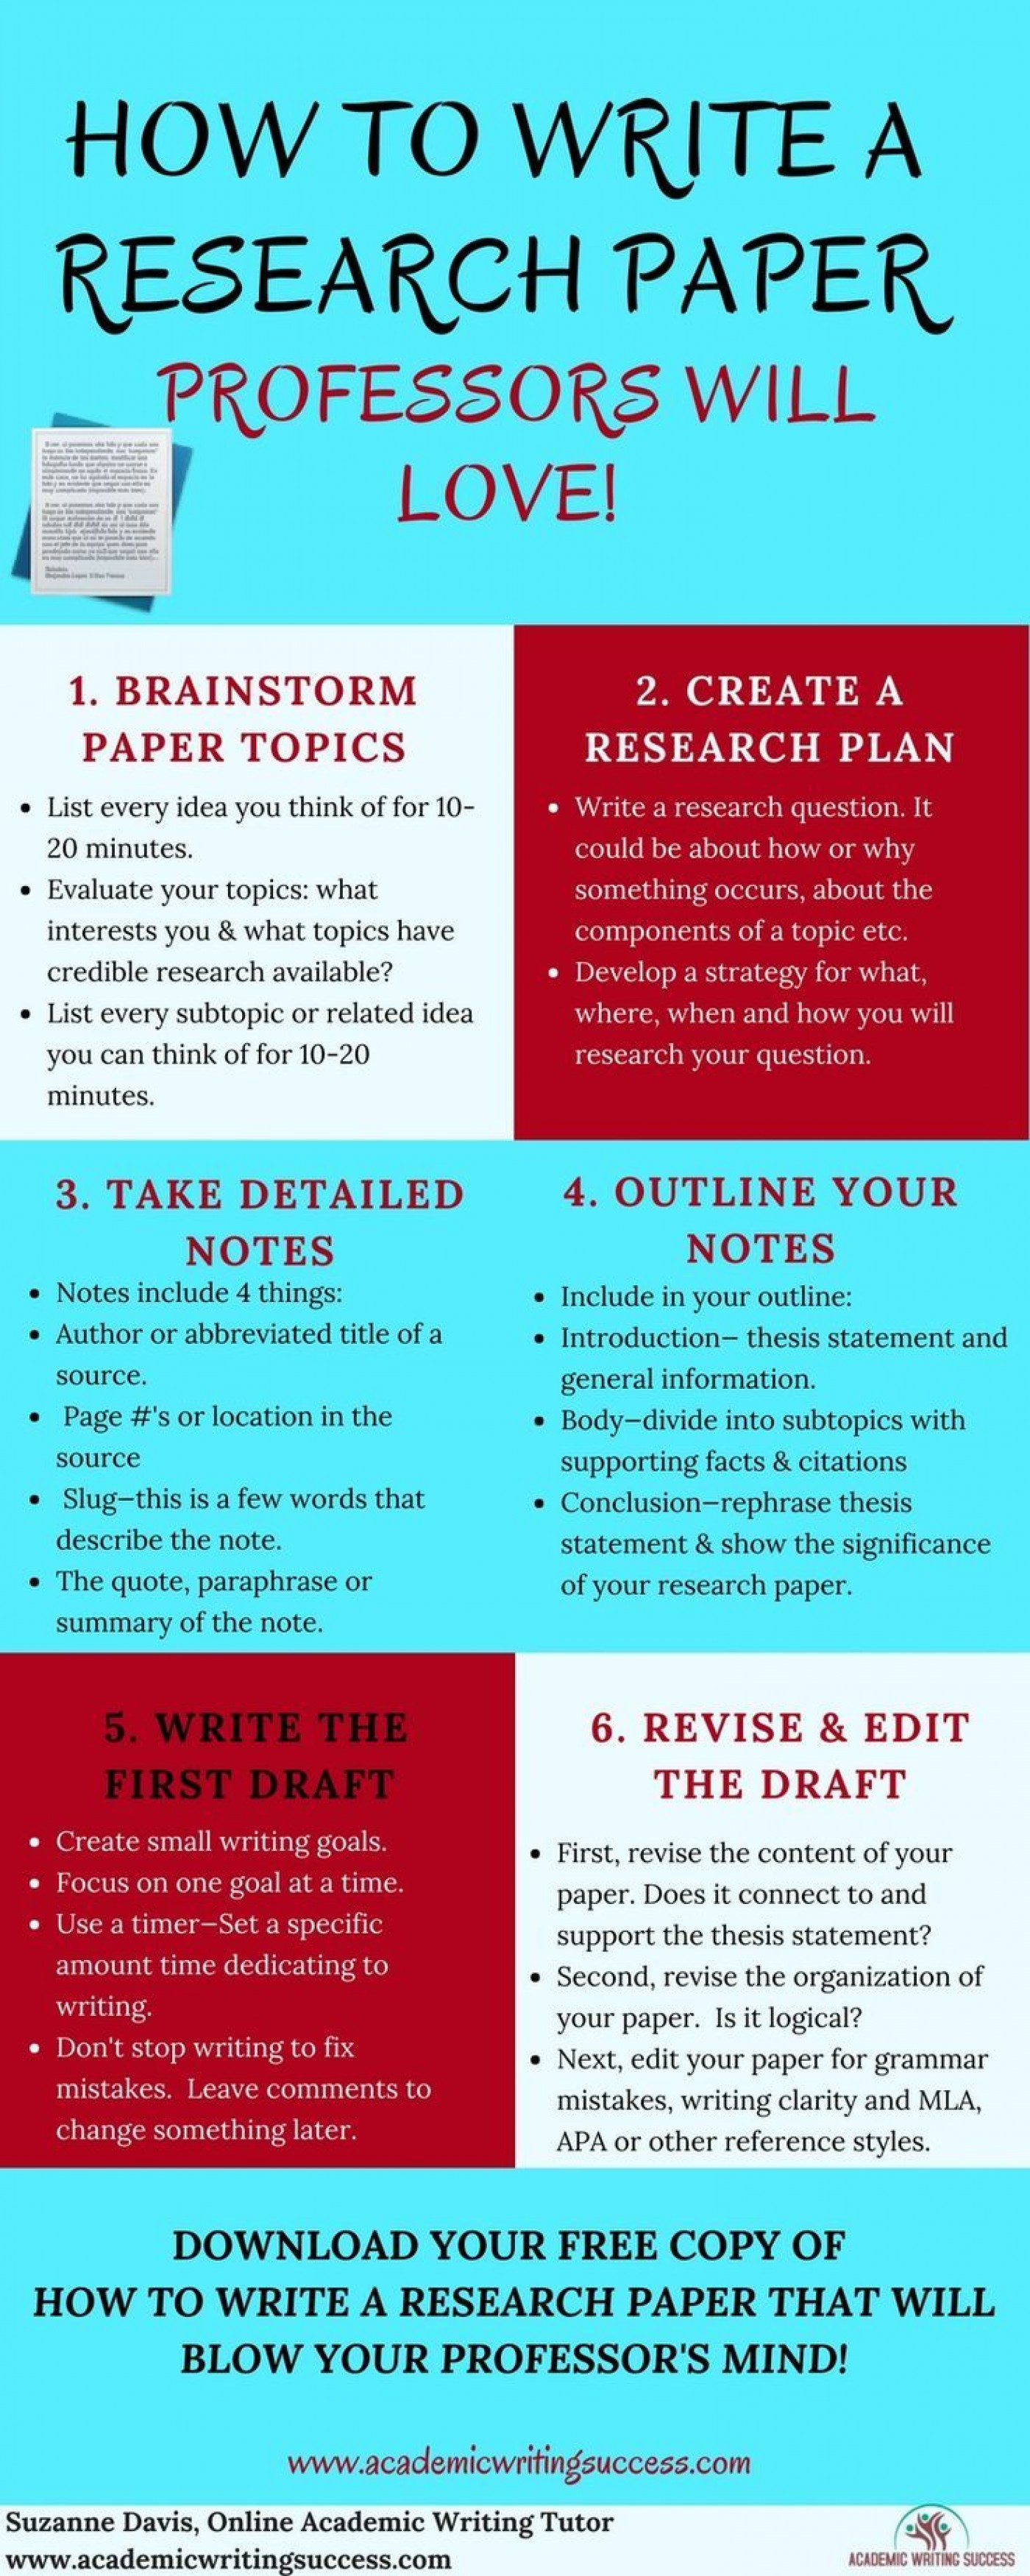 012 Research Paper Tips For Writing Unforgettable Papers A History Fast Quickly 1400